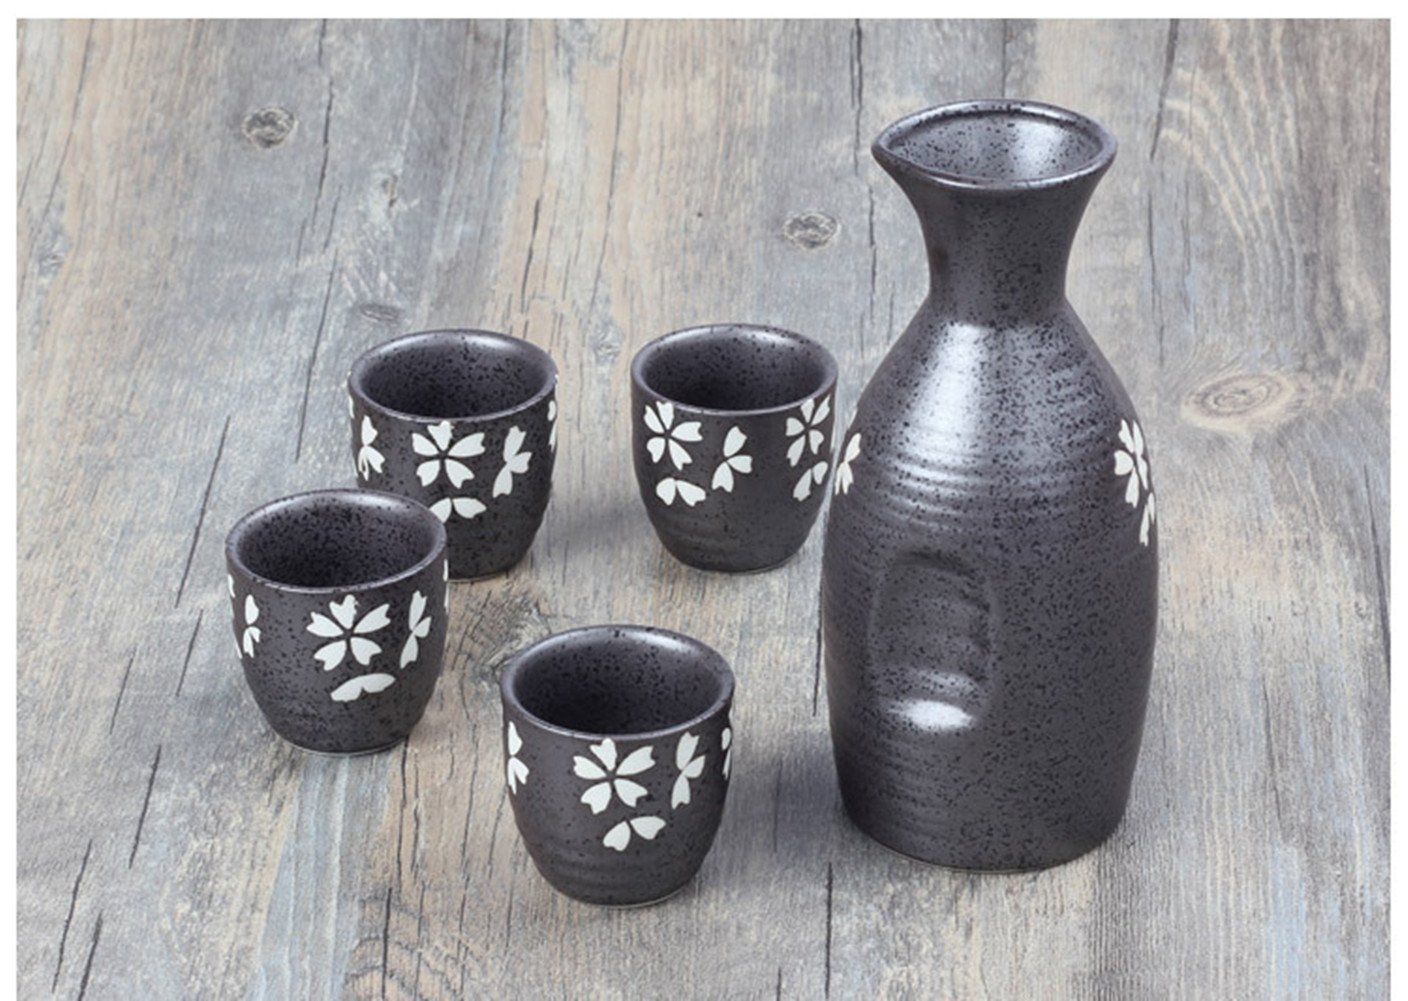 Miyare Japanese Style Ceramics Wine Set – 1 Sake Pot & 4 Cups, Six Different Patterns for Choice (Beauty of clay) NQ-JJL-0114-5